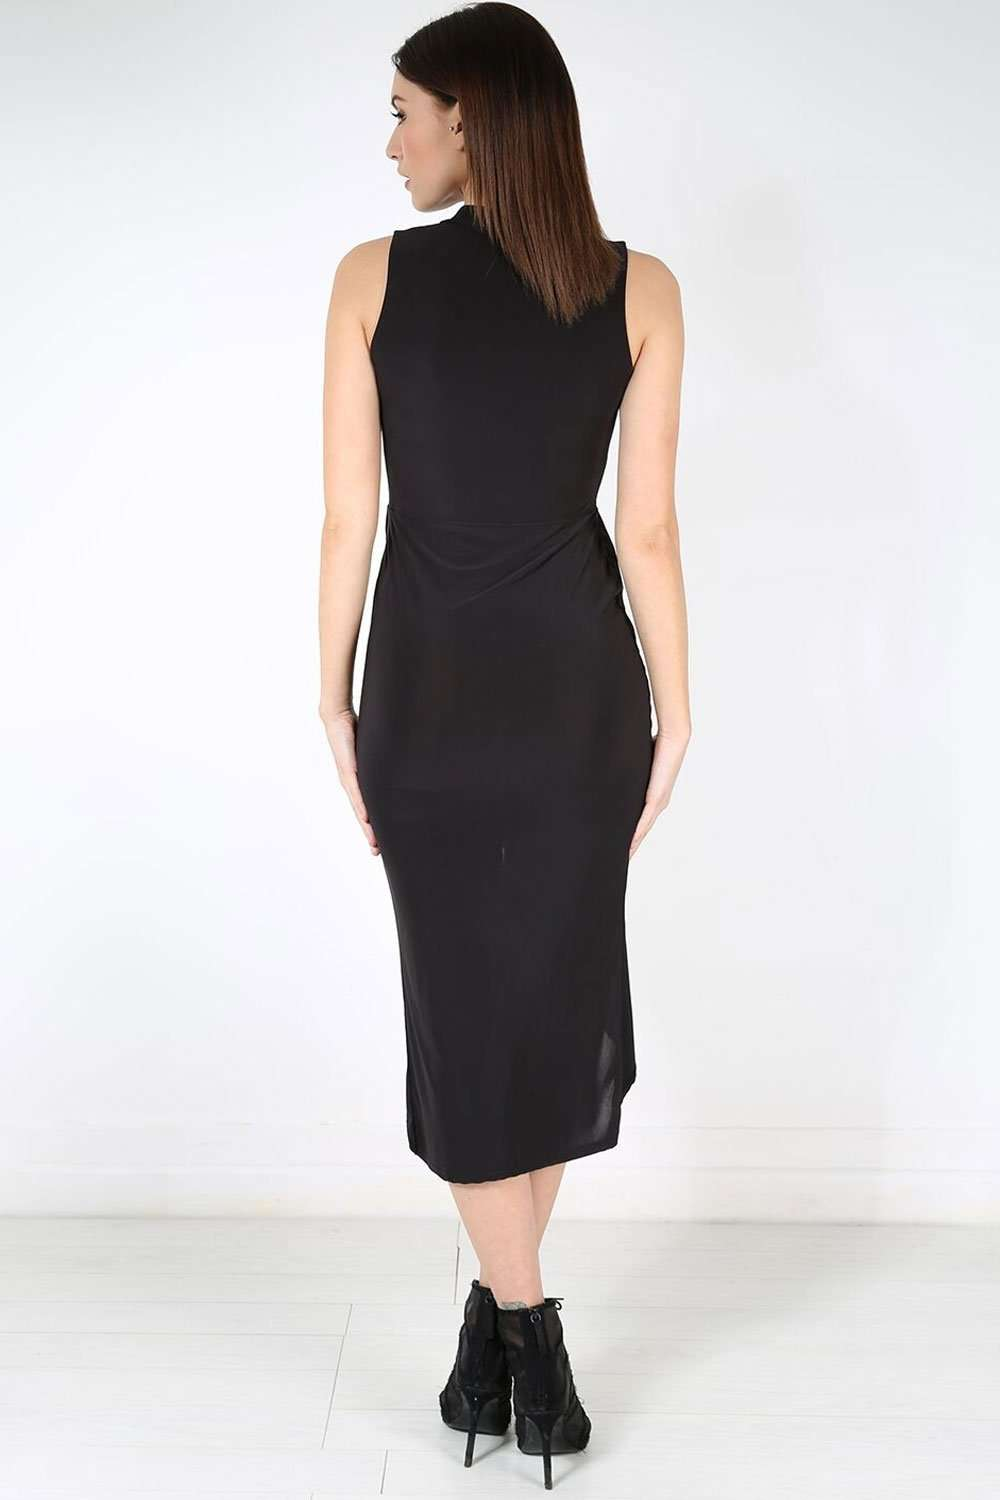 Sleeveless Black Midaxi Wrap Dress - bejealous-com